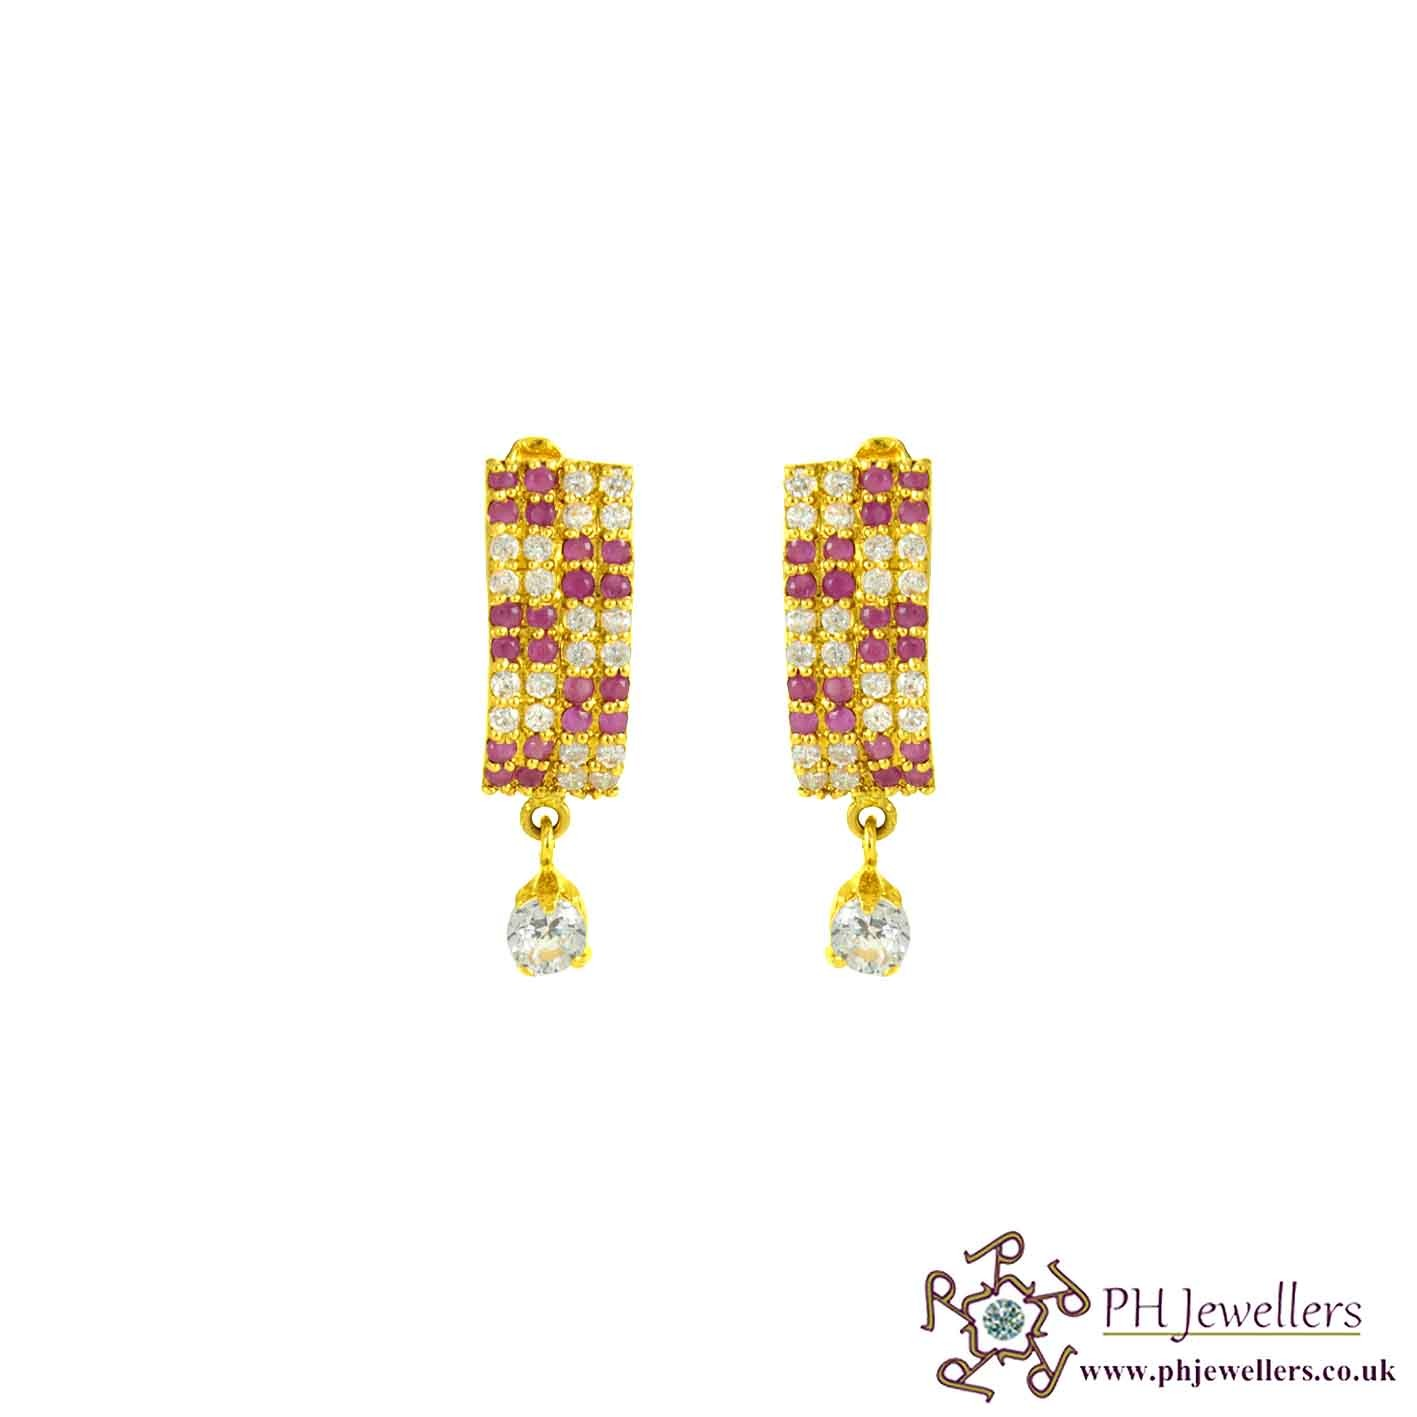 22ct 916 Hallmark Yellow Gold Clip-on Ruby White CZ Earring CE34